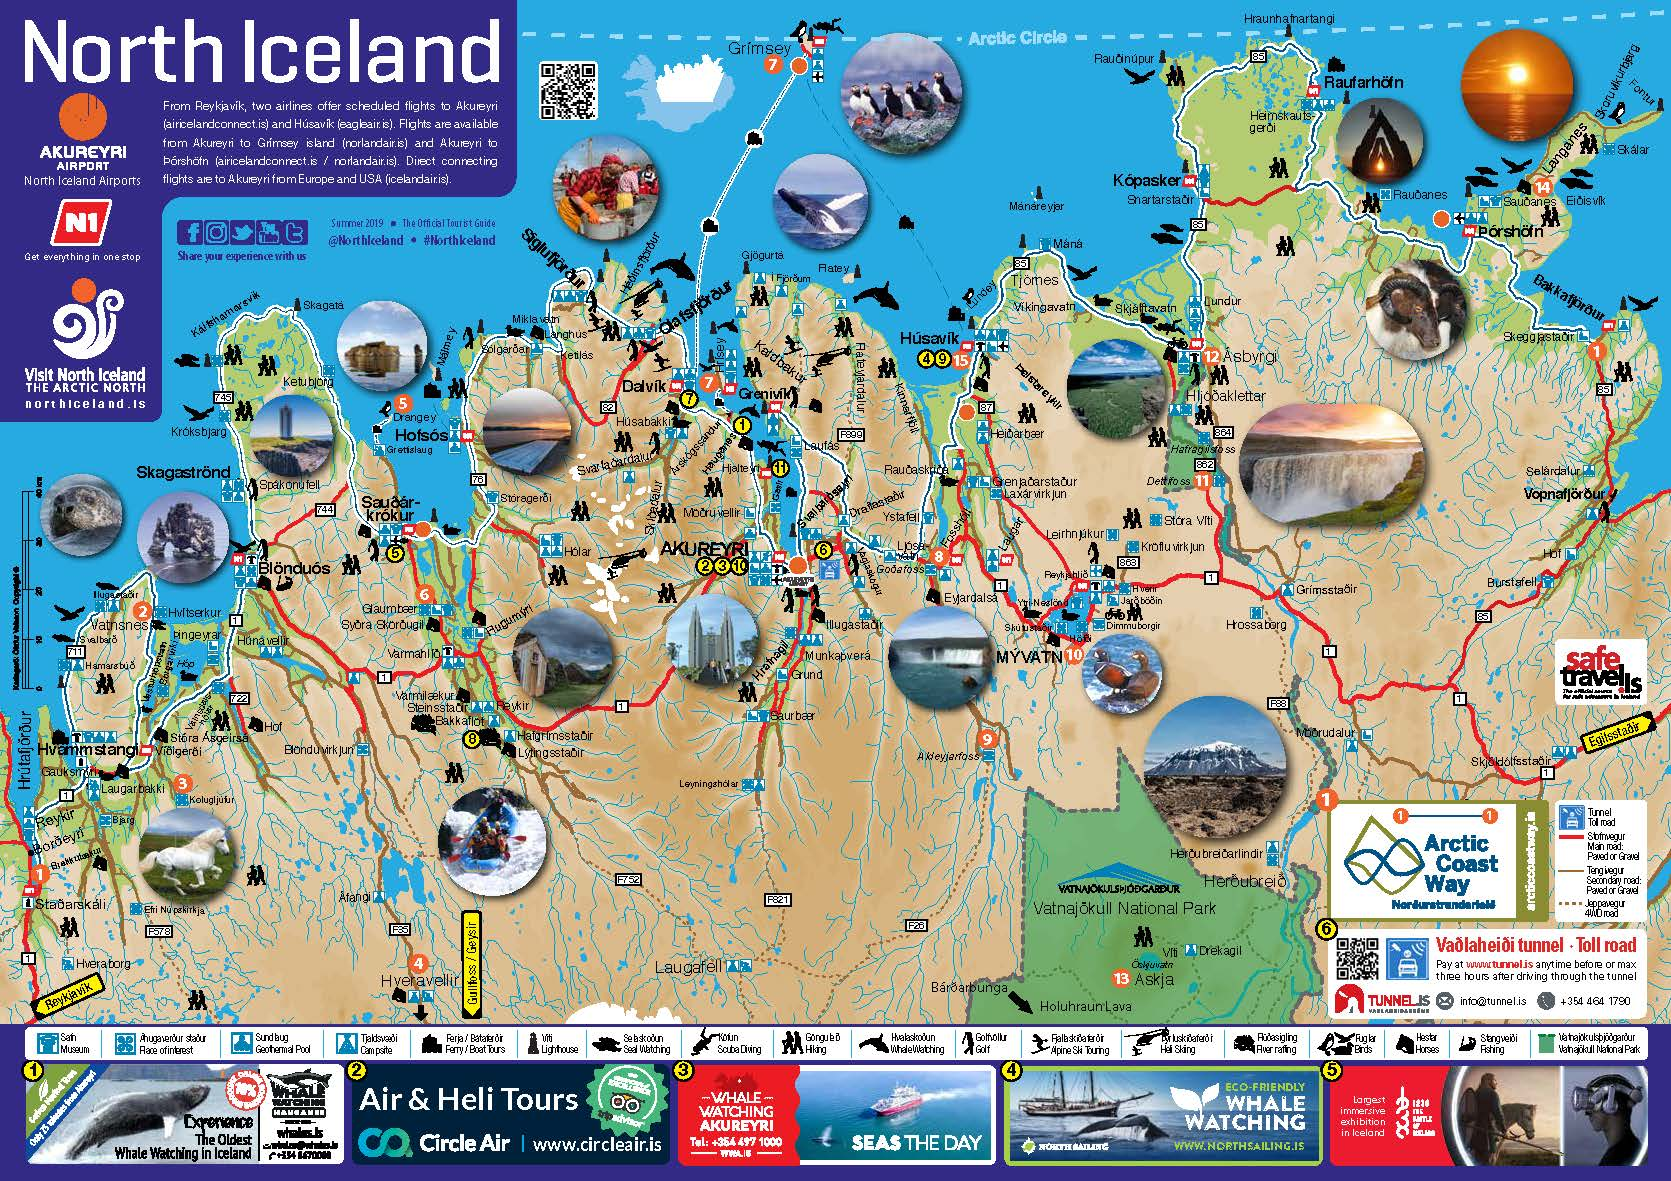 Maps of North Iceland | Visit North Iceland Iceland Attractions Map on australia attractions map, iceland attractions and monuments, iceland shopping, iceland points of interest maps, venezuela attractions map, iceland information, st. kitts attractions map, world attractions map, dominica attractions map, reykjavik tourist map, italy attractions map, jordan attractions map, myanmar attractions map, egypt attractions map, myrtle beach south carolina attractions map, switzerland attractions map, belgium attractions map, mongolia attractions map, iceland tourist attractions, azerbaijan attractions map,